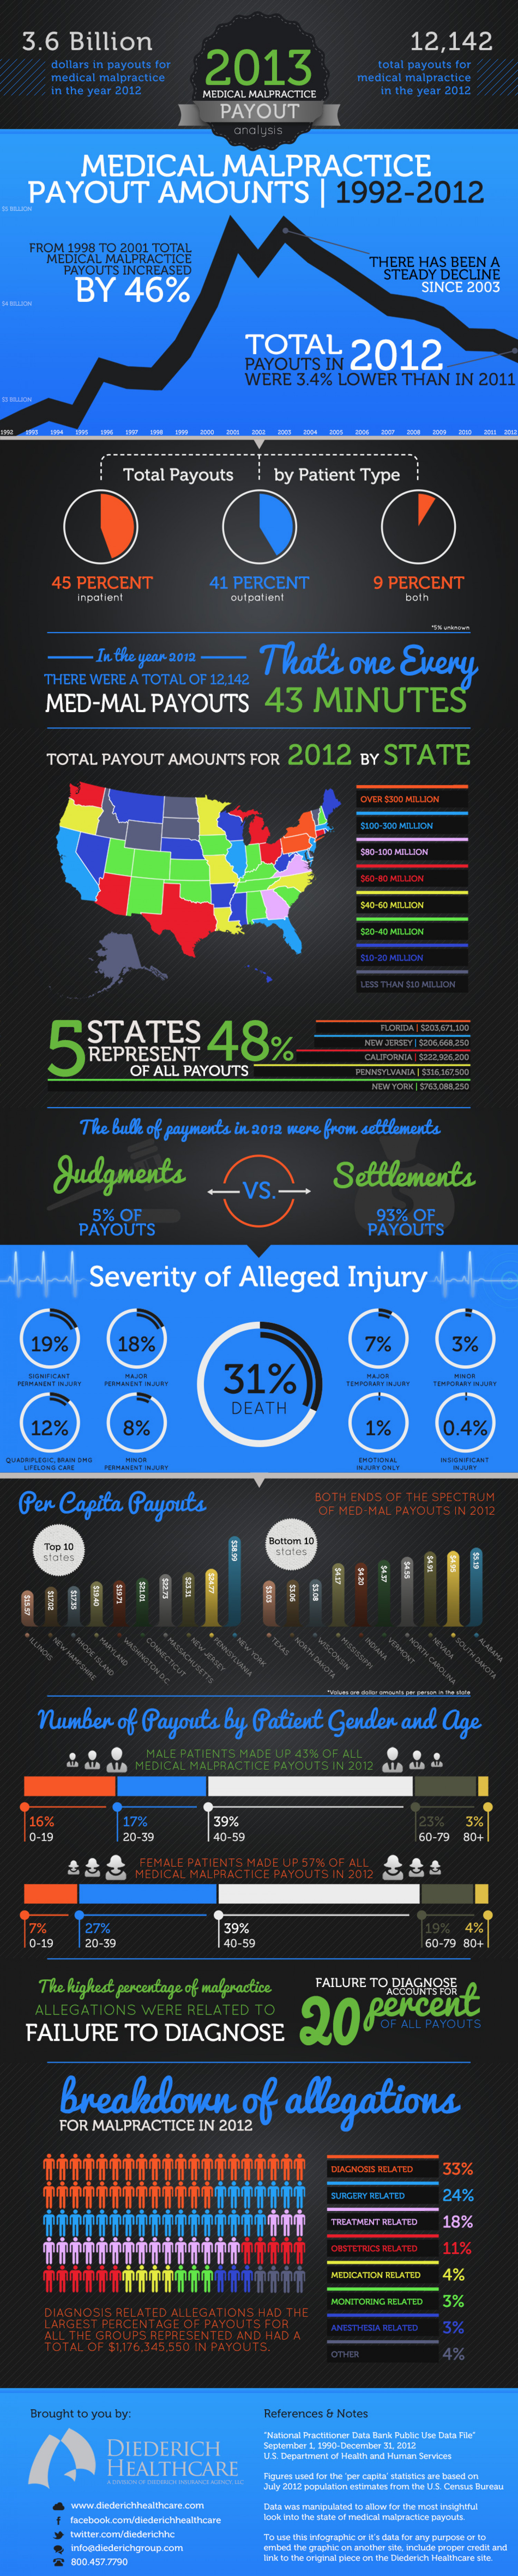 2013 Medical Malpractice Payout Analysis Infographic